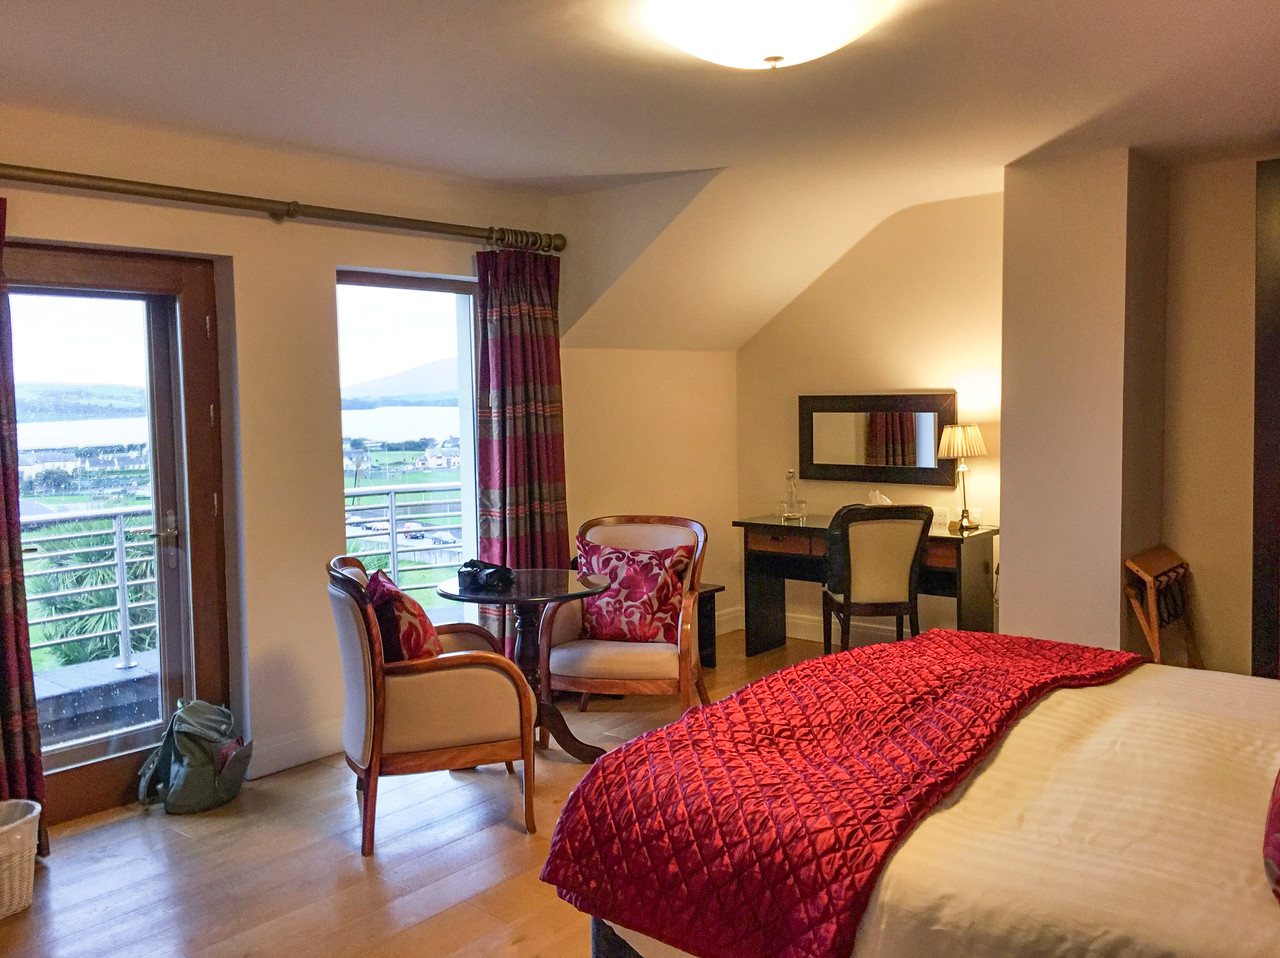 Room at the Greenmount Guest House, Dingle, Kerry4Greenmount Guest House, Dingle, Kerry